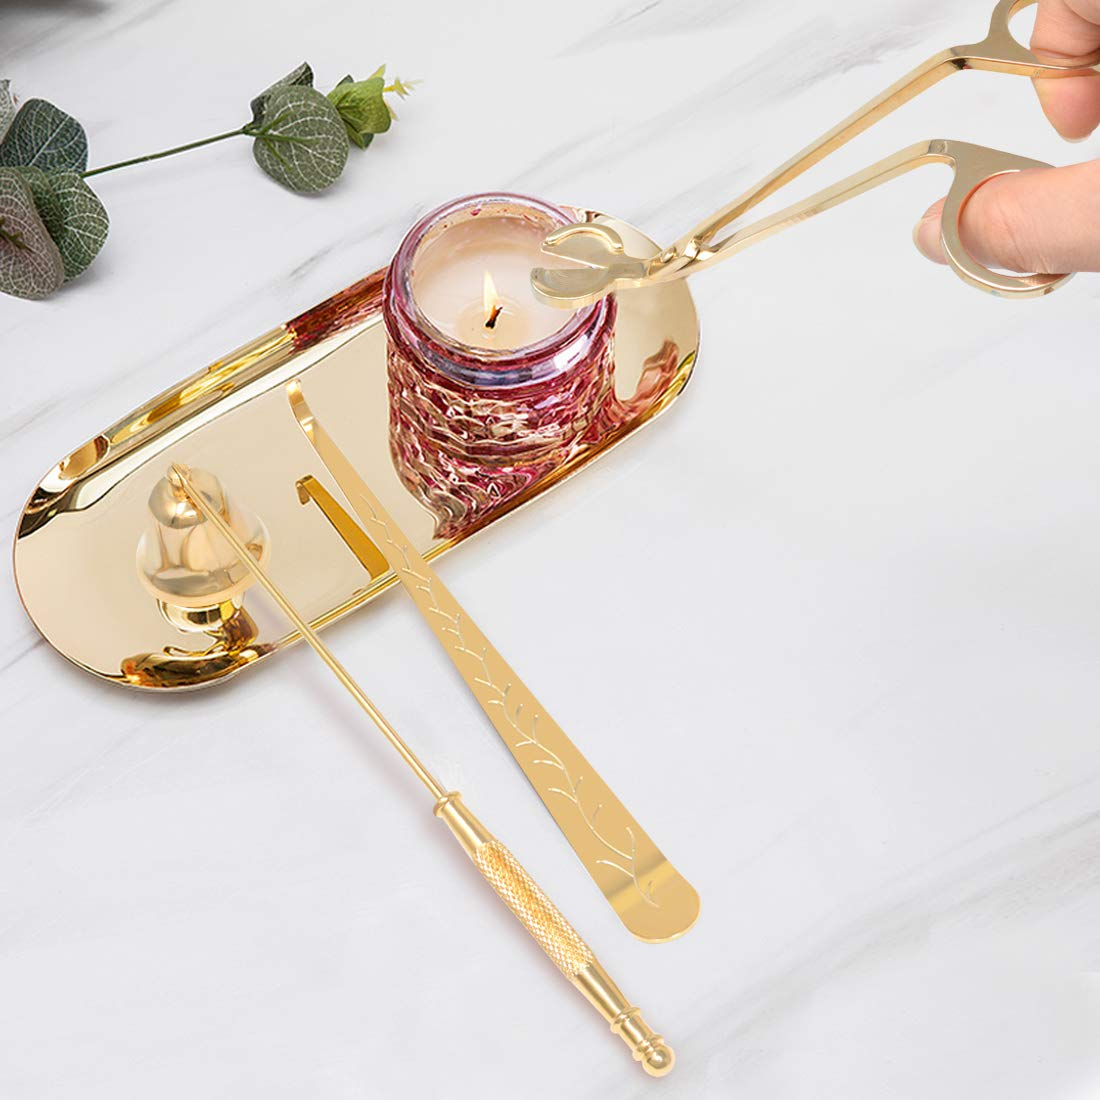 Yolyoo Candle Wick Trimmer/Dipper Candle Snuffer Candle Accessory Set 3 in 1 Candle Tool kit (Gold)